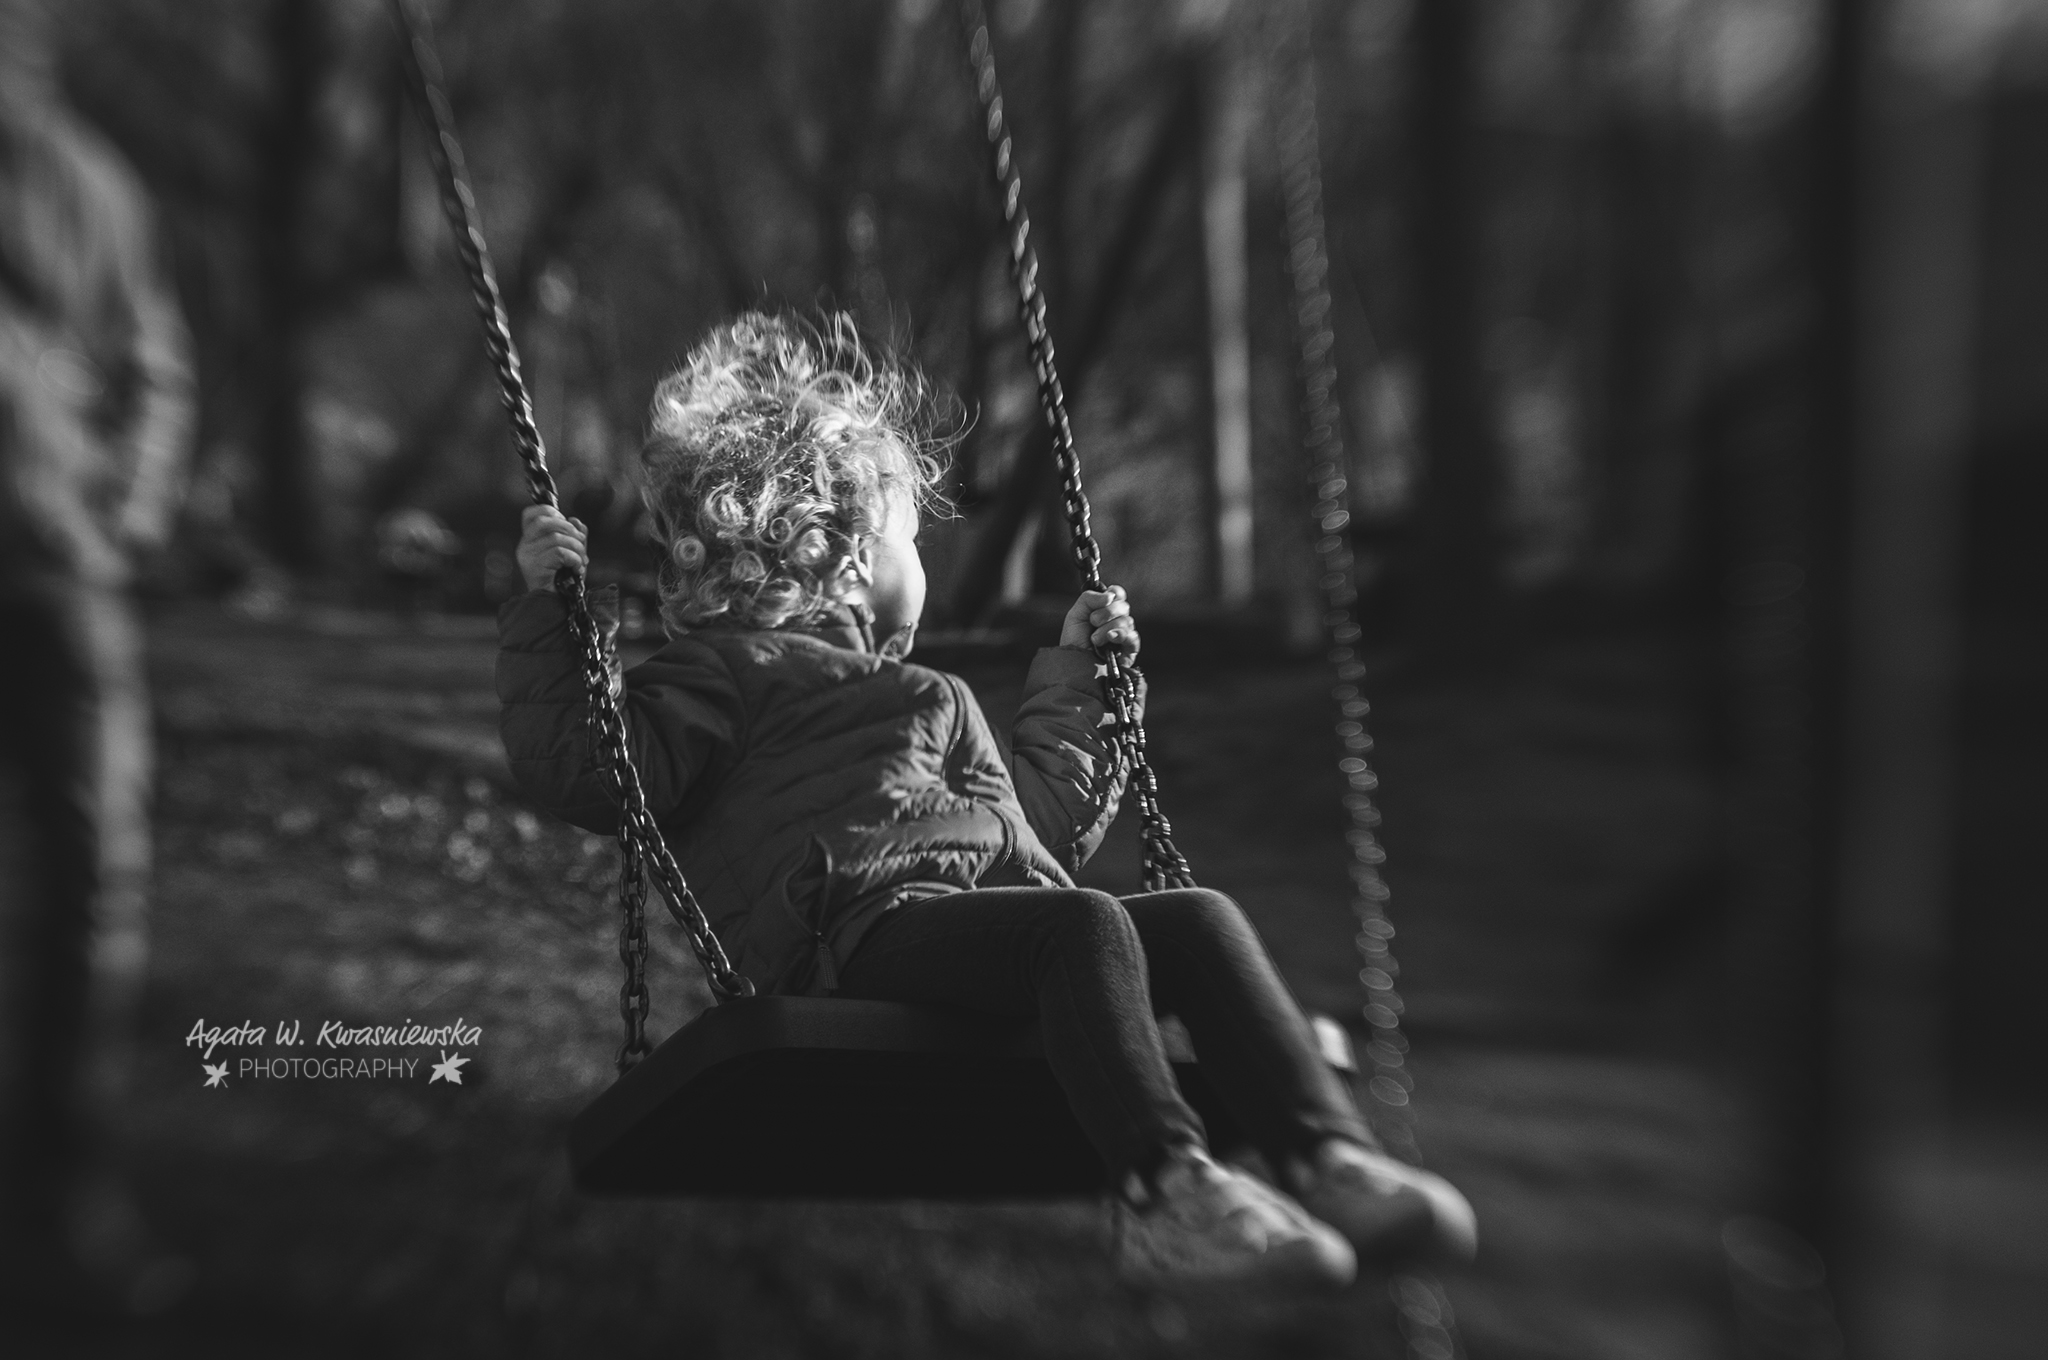 Swing -  by Agata W. Kwasniewska Photography